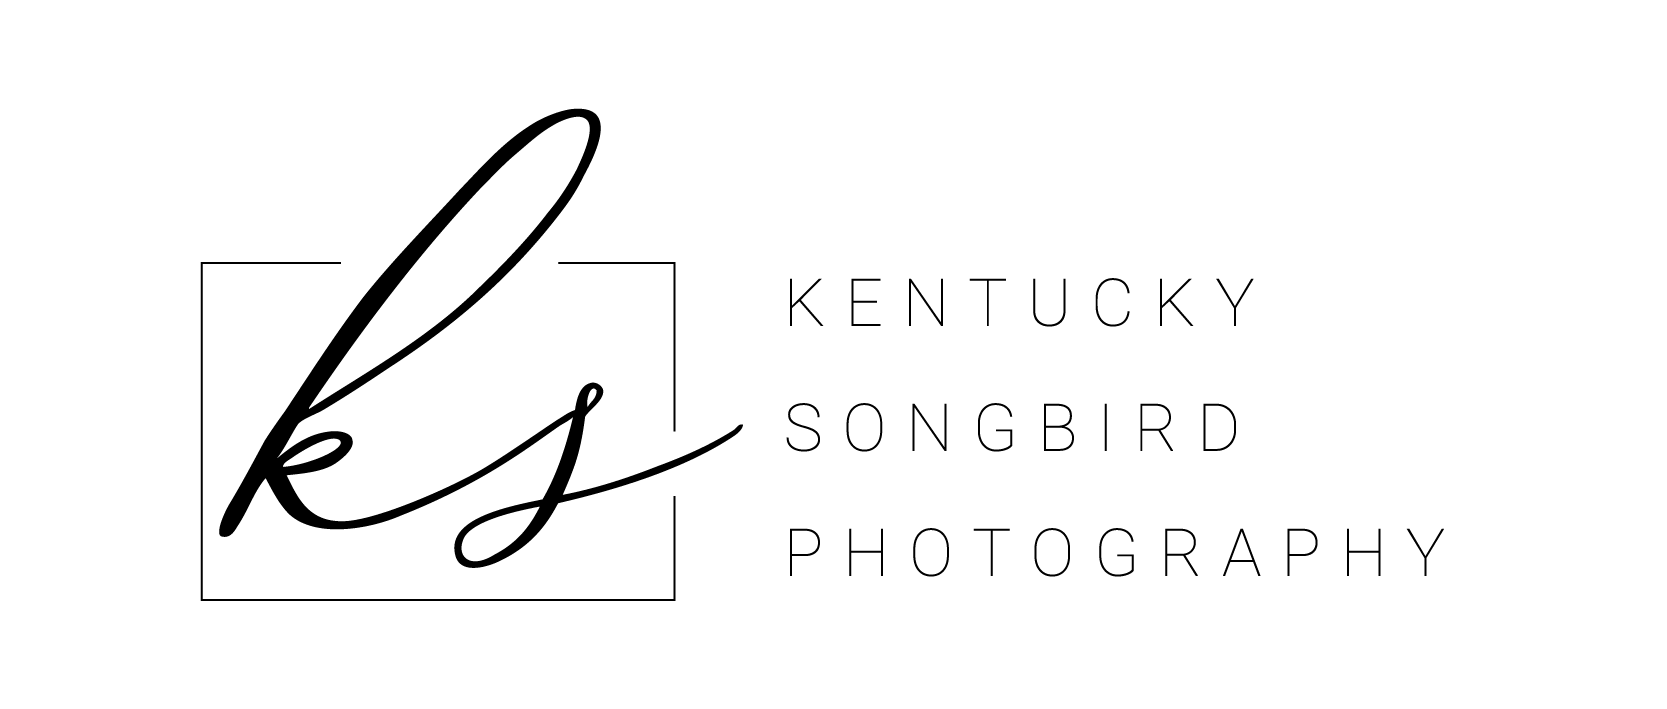 Kentucky Songbird - Logo Concepts - Botanical-08.png